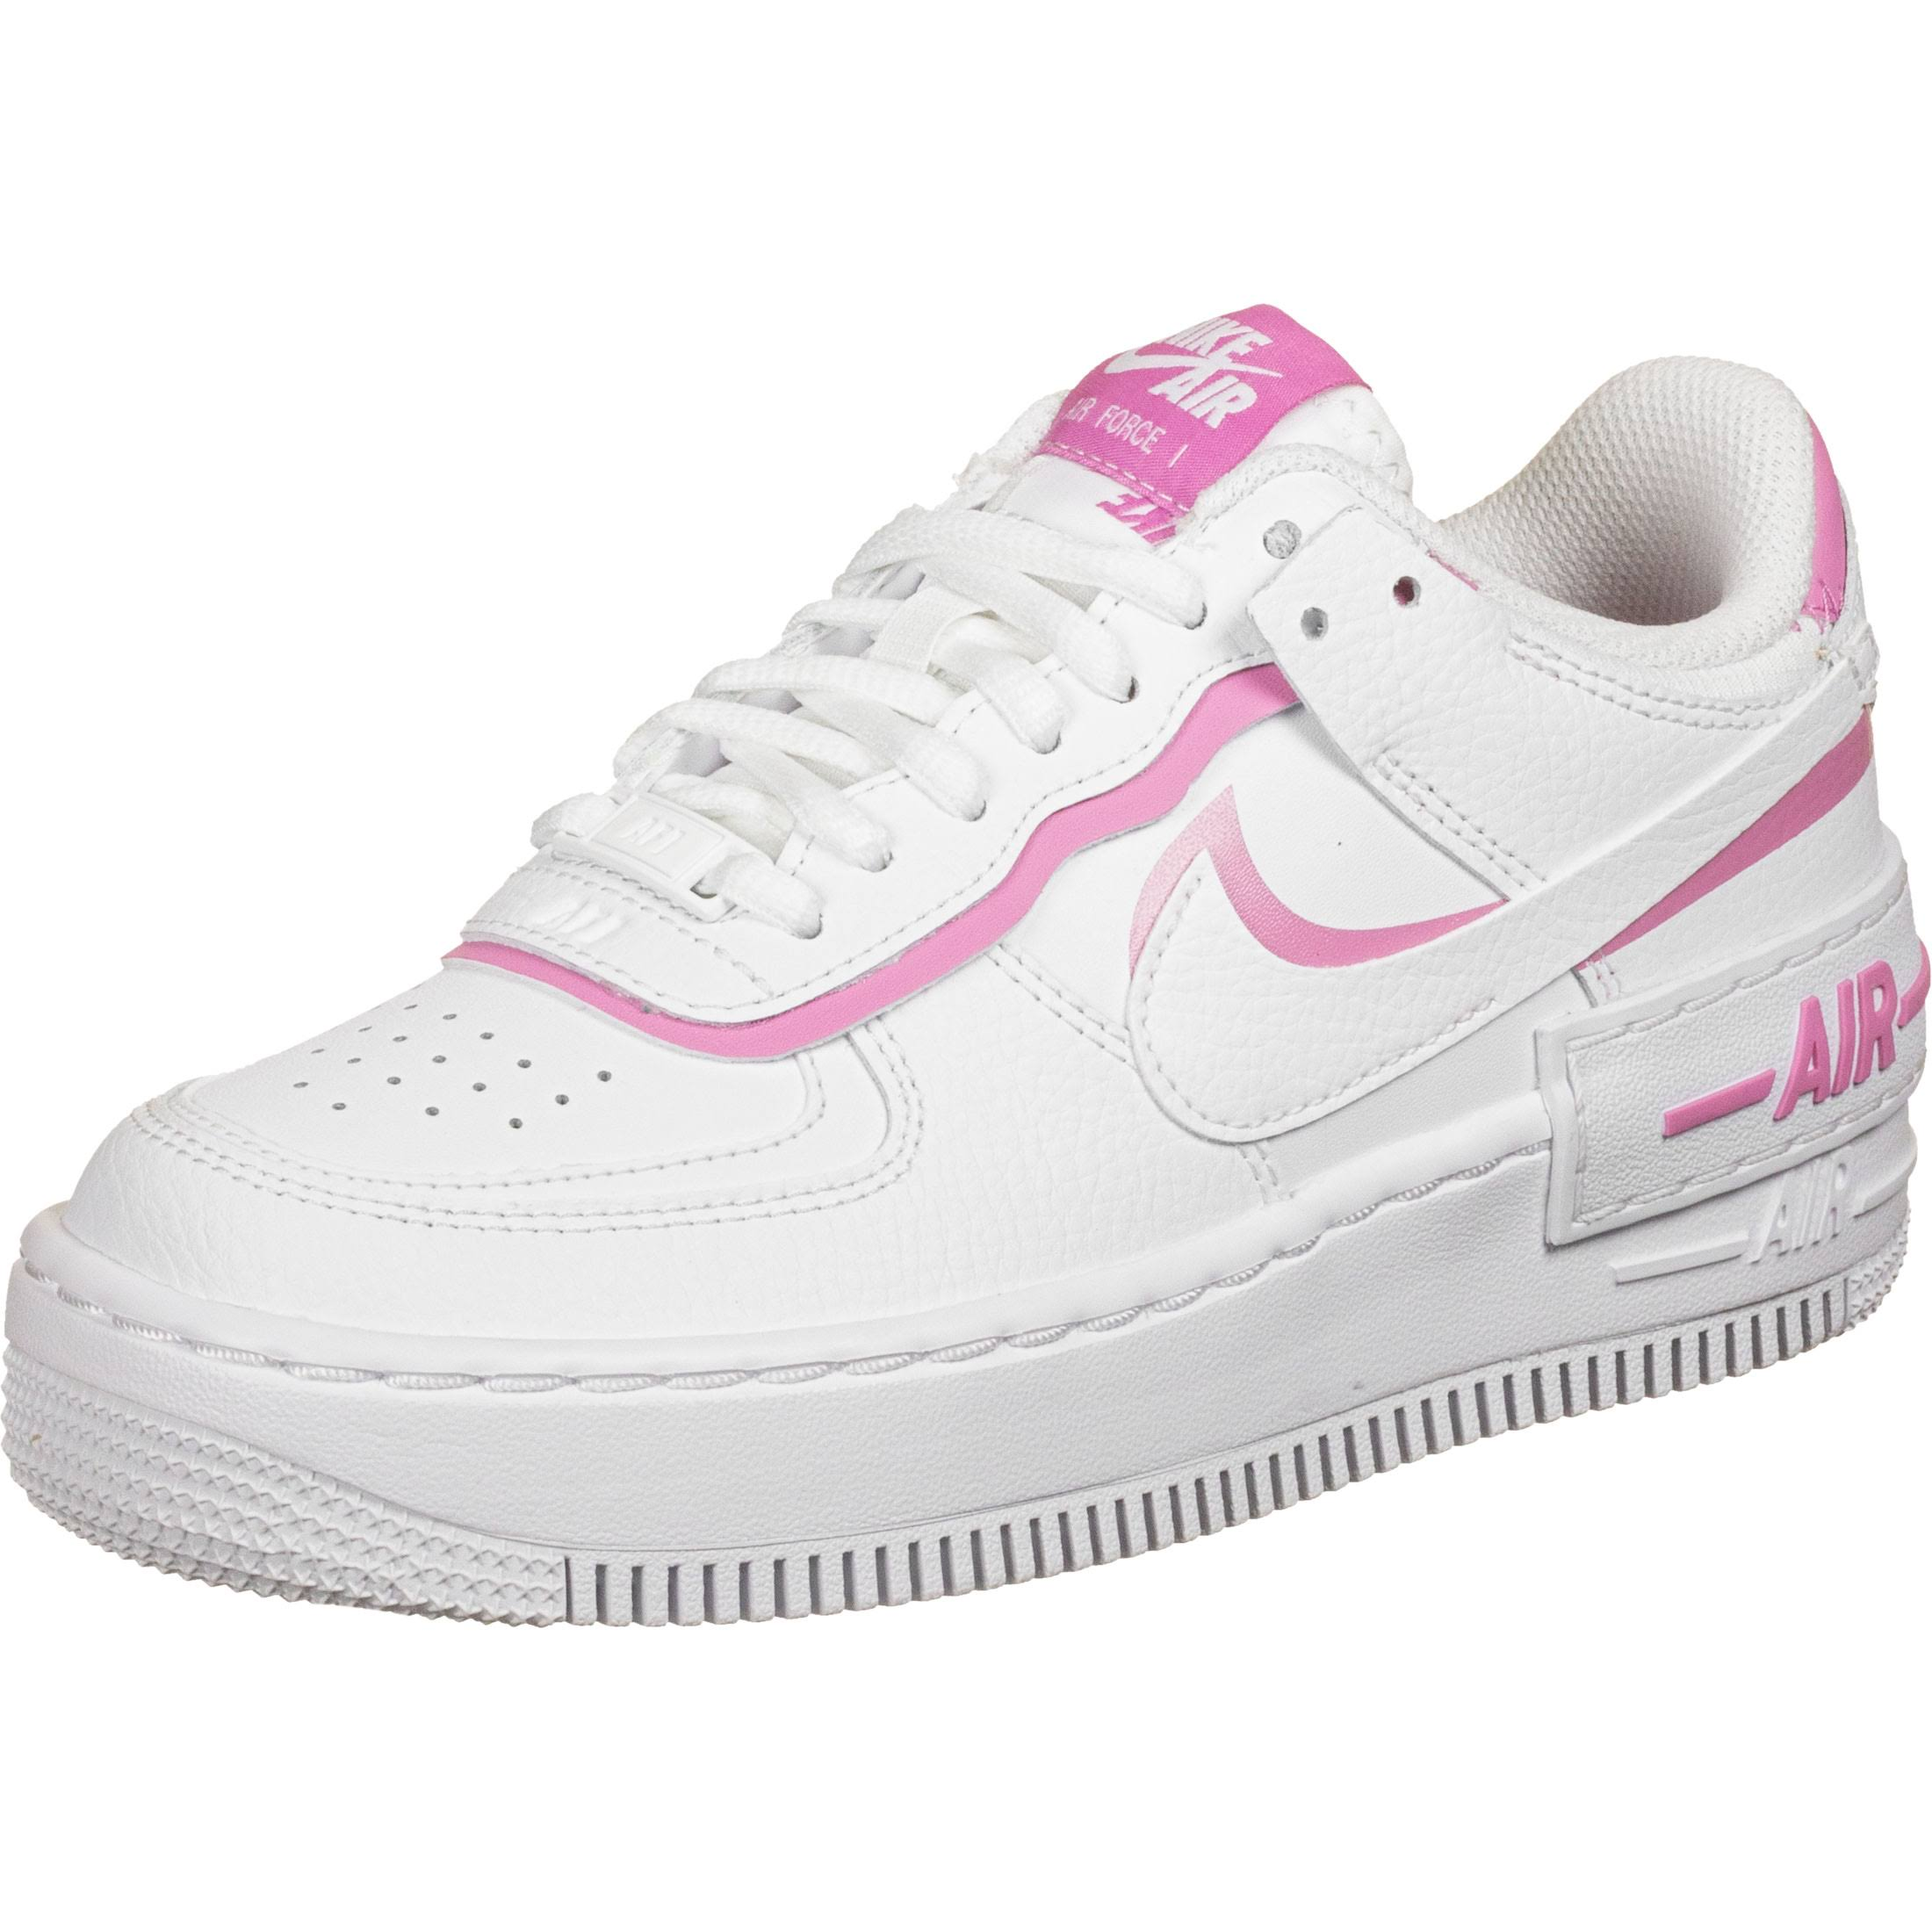 Nike Air Force 1 Shadow Women's - White - Trainers